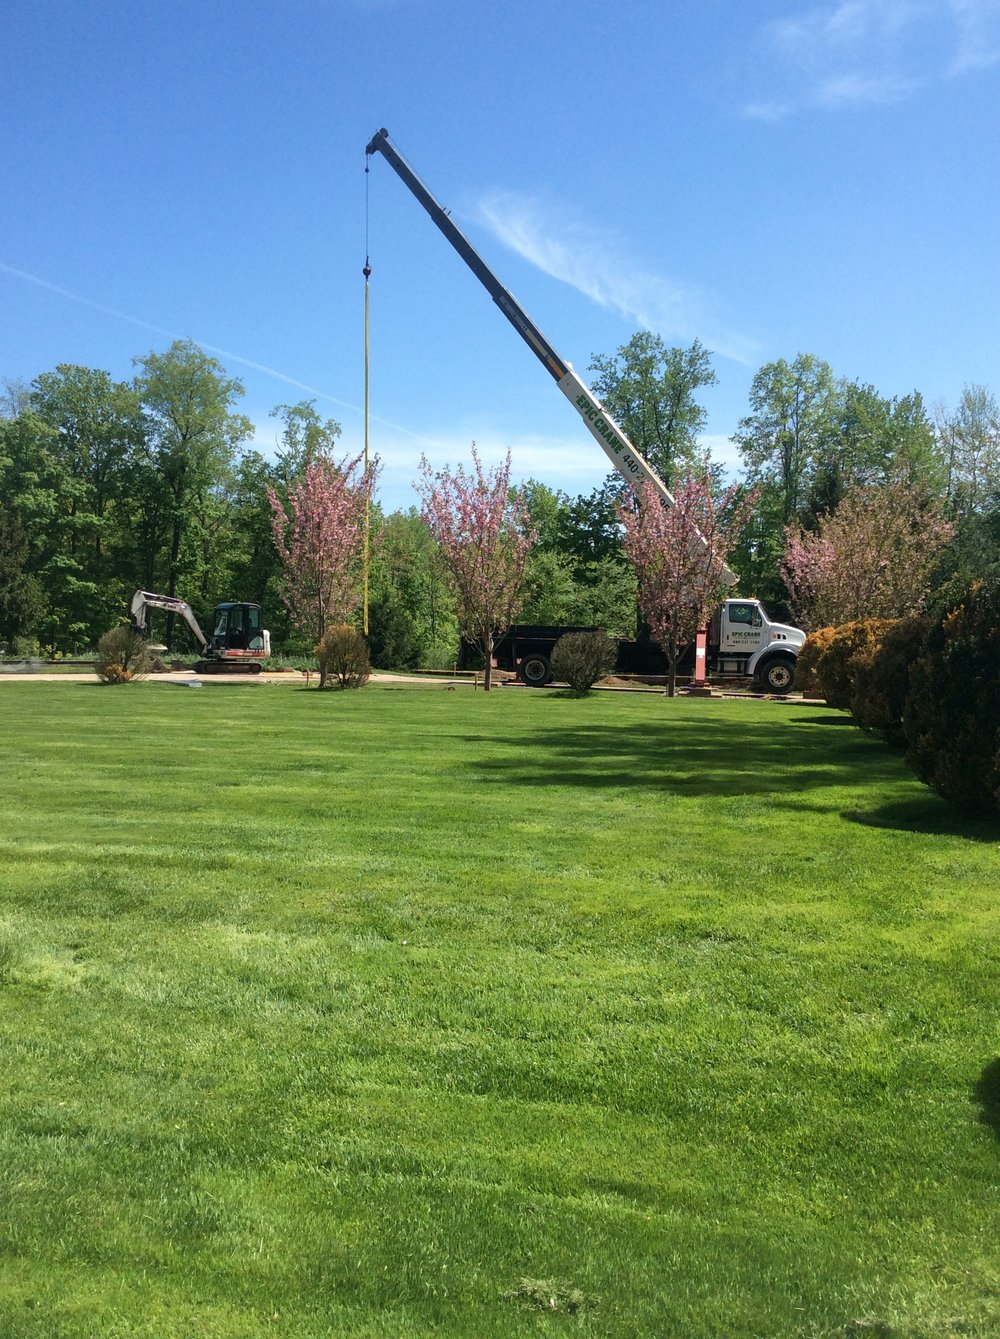 Best lawn fertilizer company in Bainbridge, Geauga County, Ohio